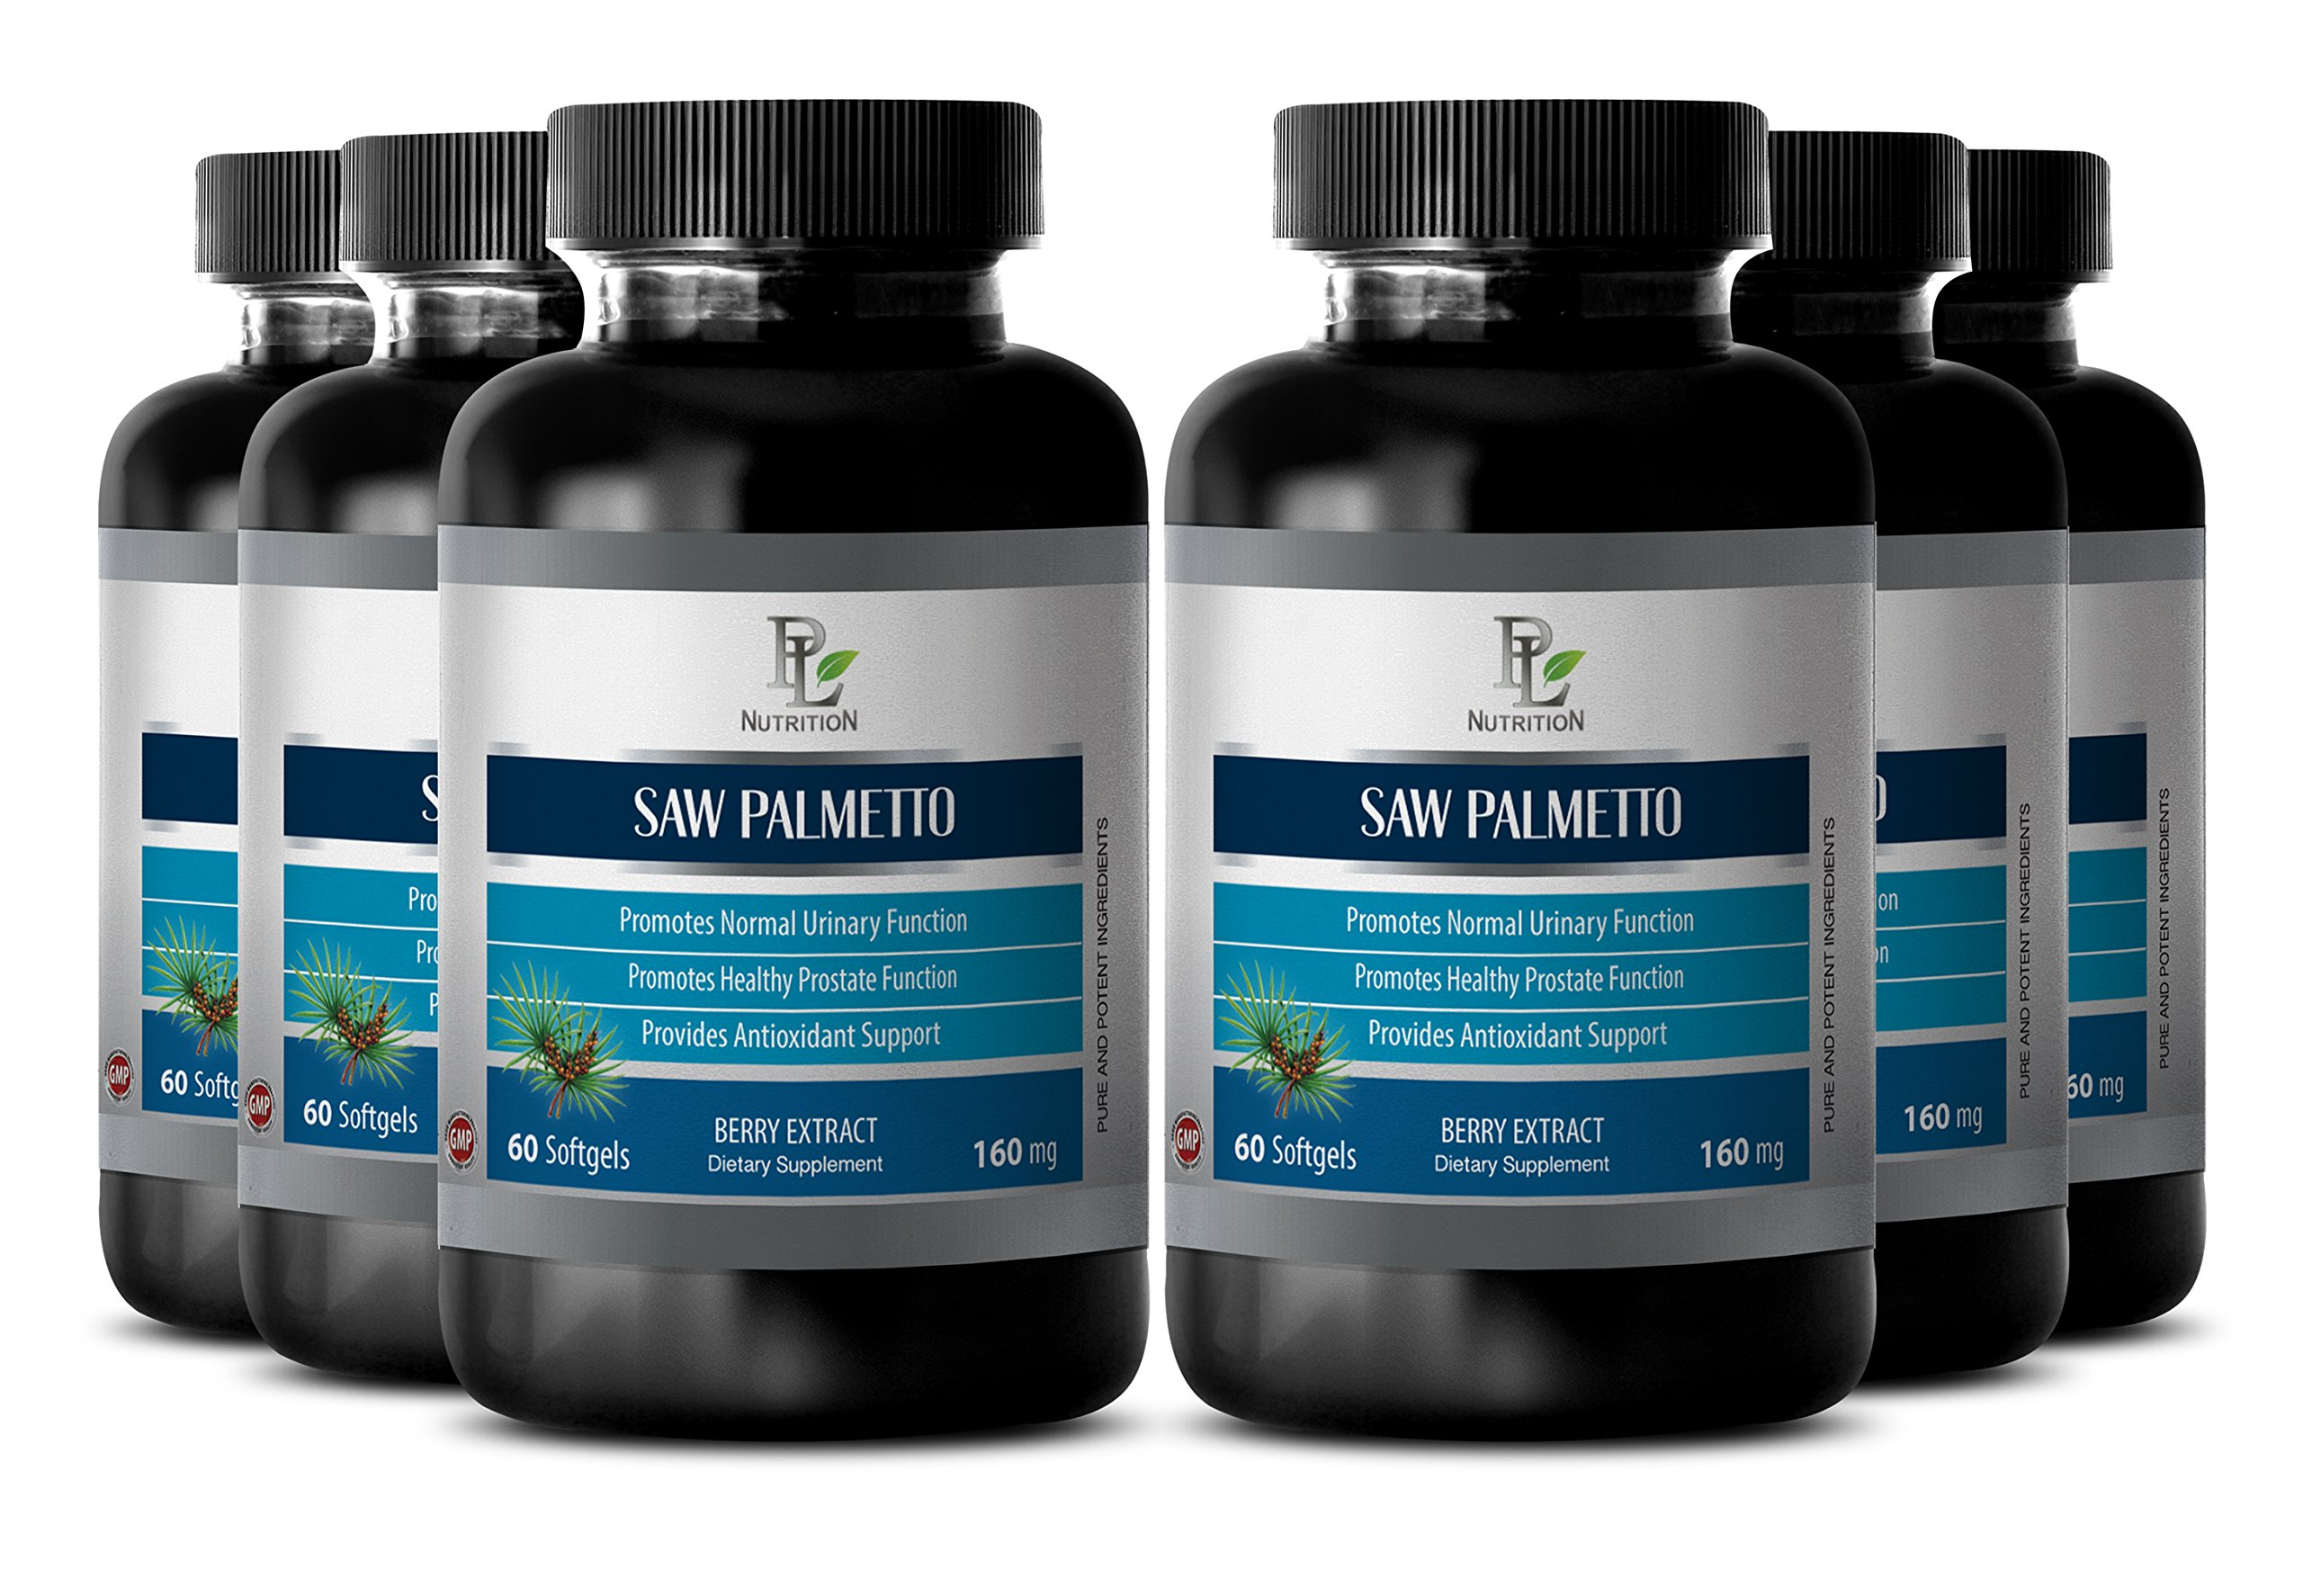 Libido natural - SAW PALMETTO BERRY EXTRACT 160Mg - Male libido pills - 6 Bottle 360 Softgels